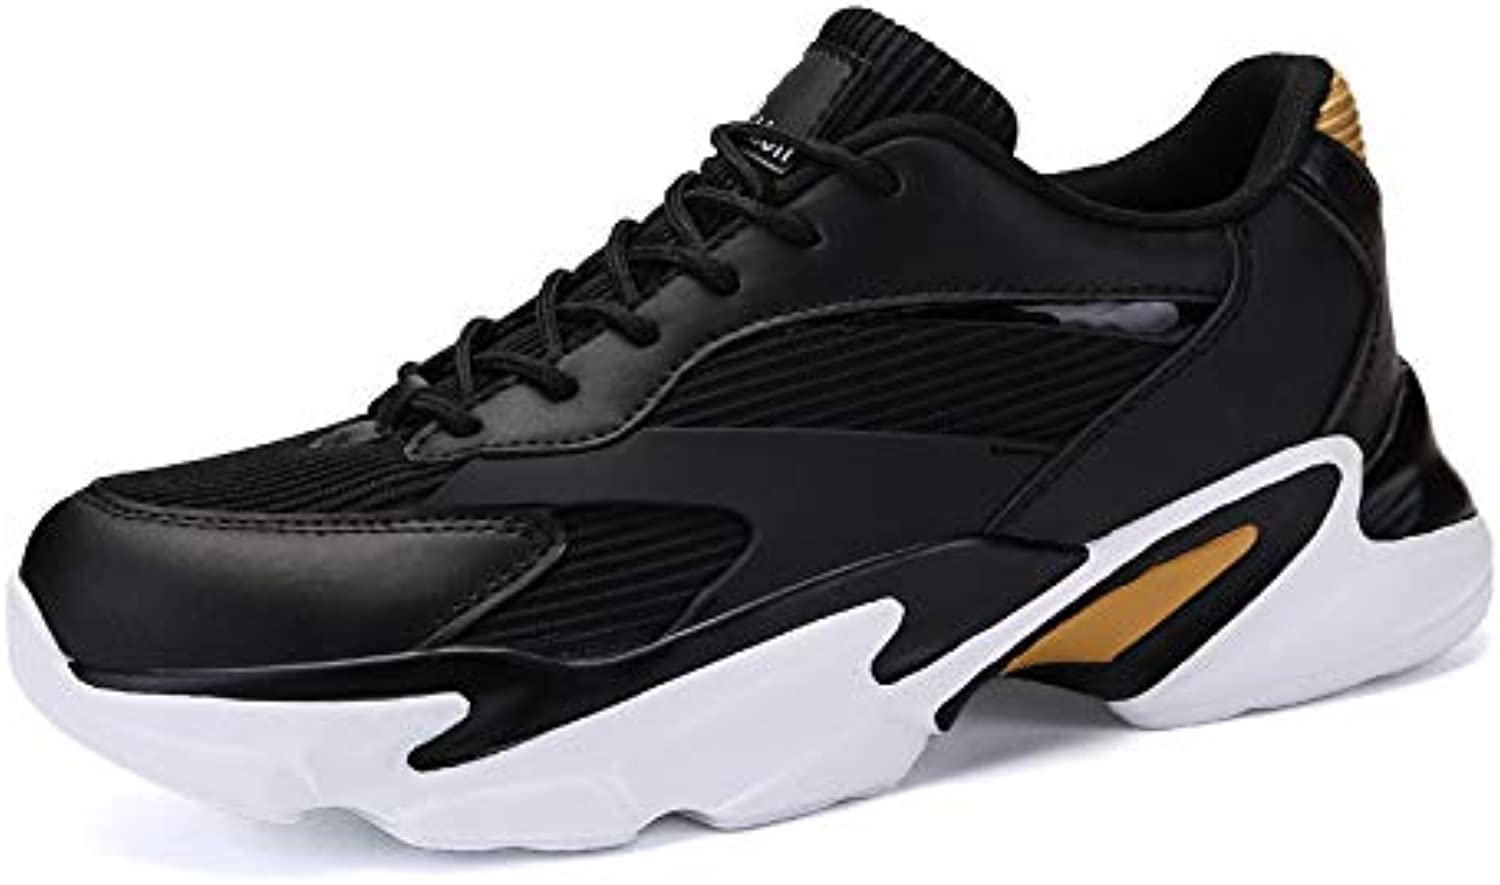 SZF228 Man Sneakers Large size tide shoes spring and autumn casual sports shoes Korean version of the breathable running shoes(black)